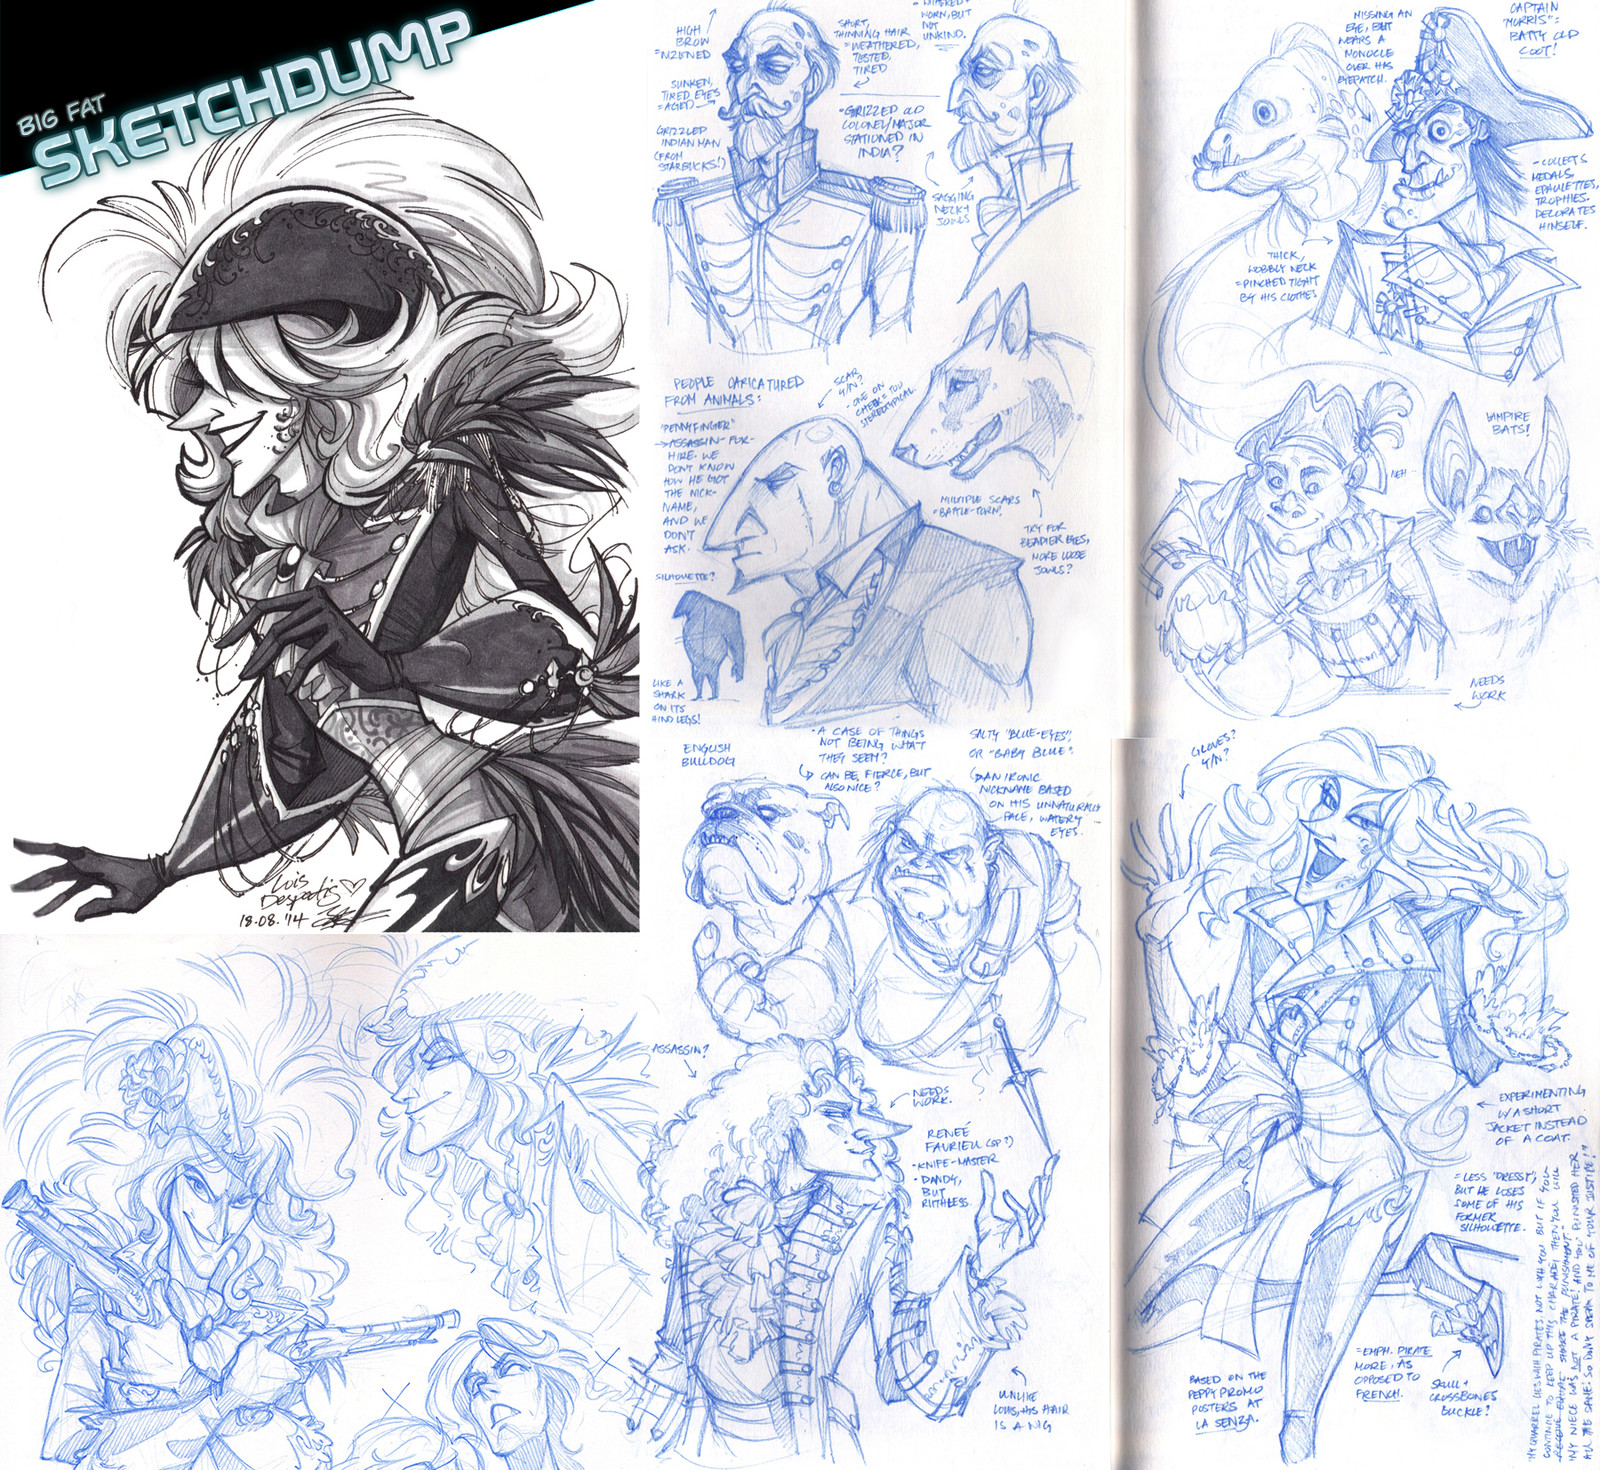 Sketchdump #1: Collection of explorations from sketchbook - (2015)